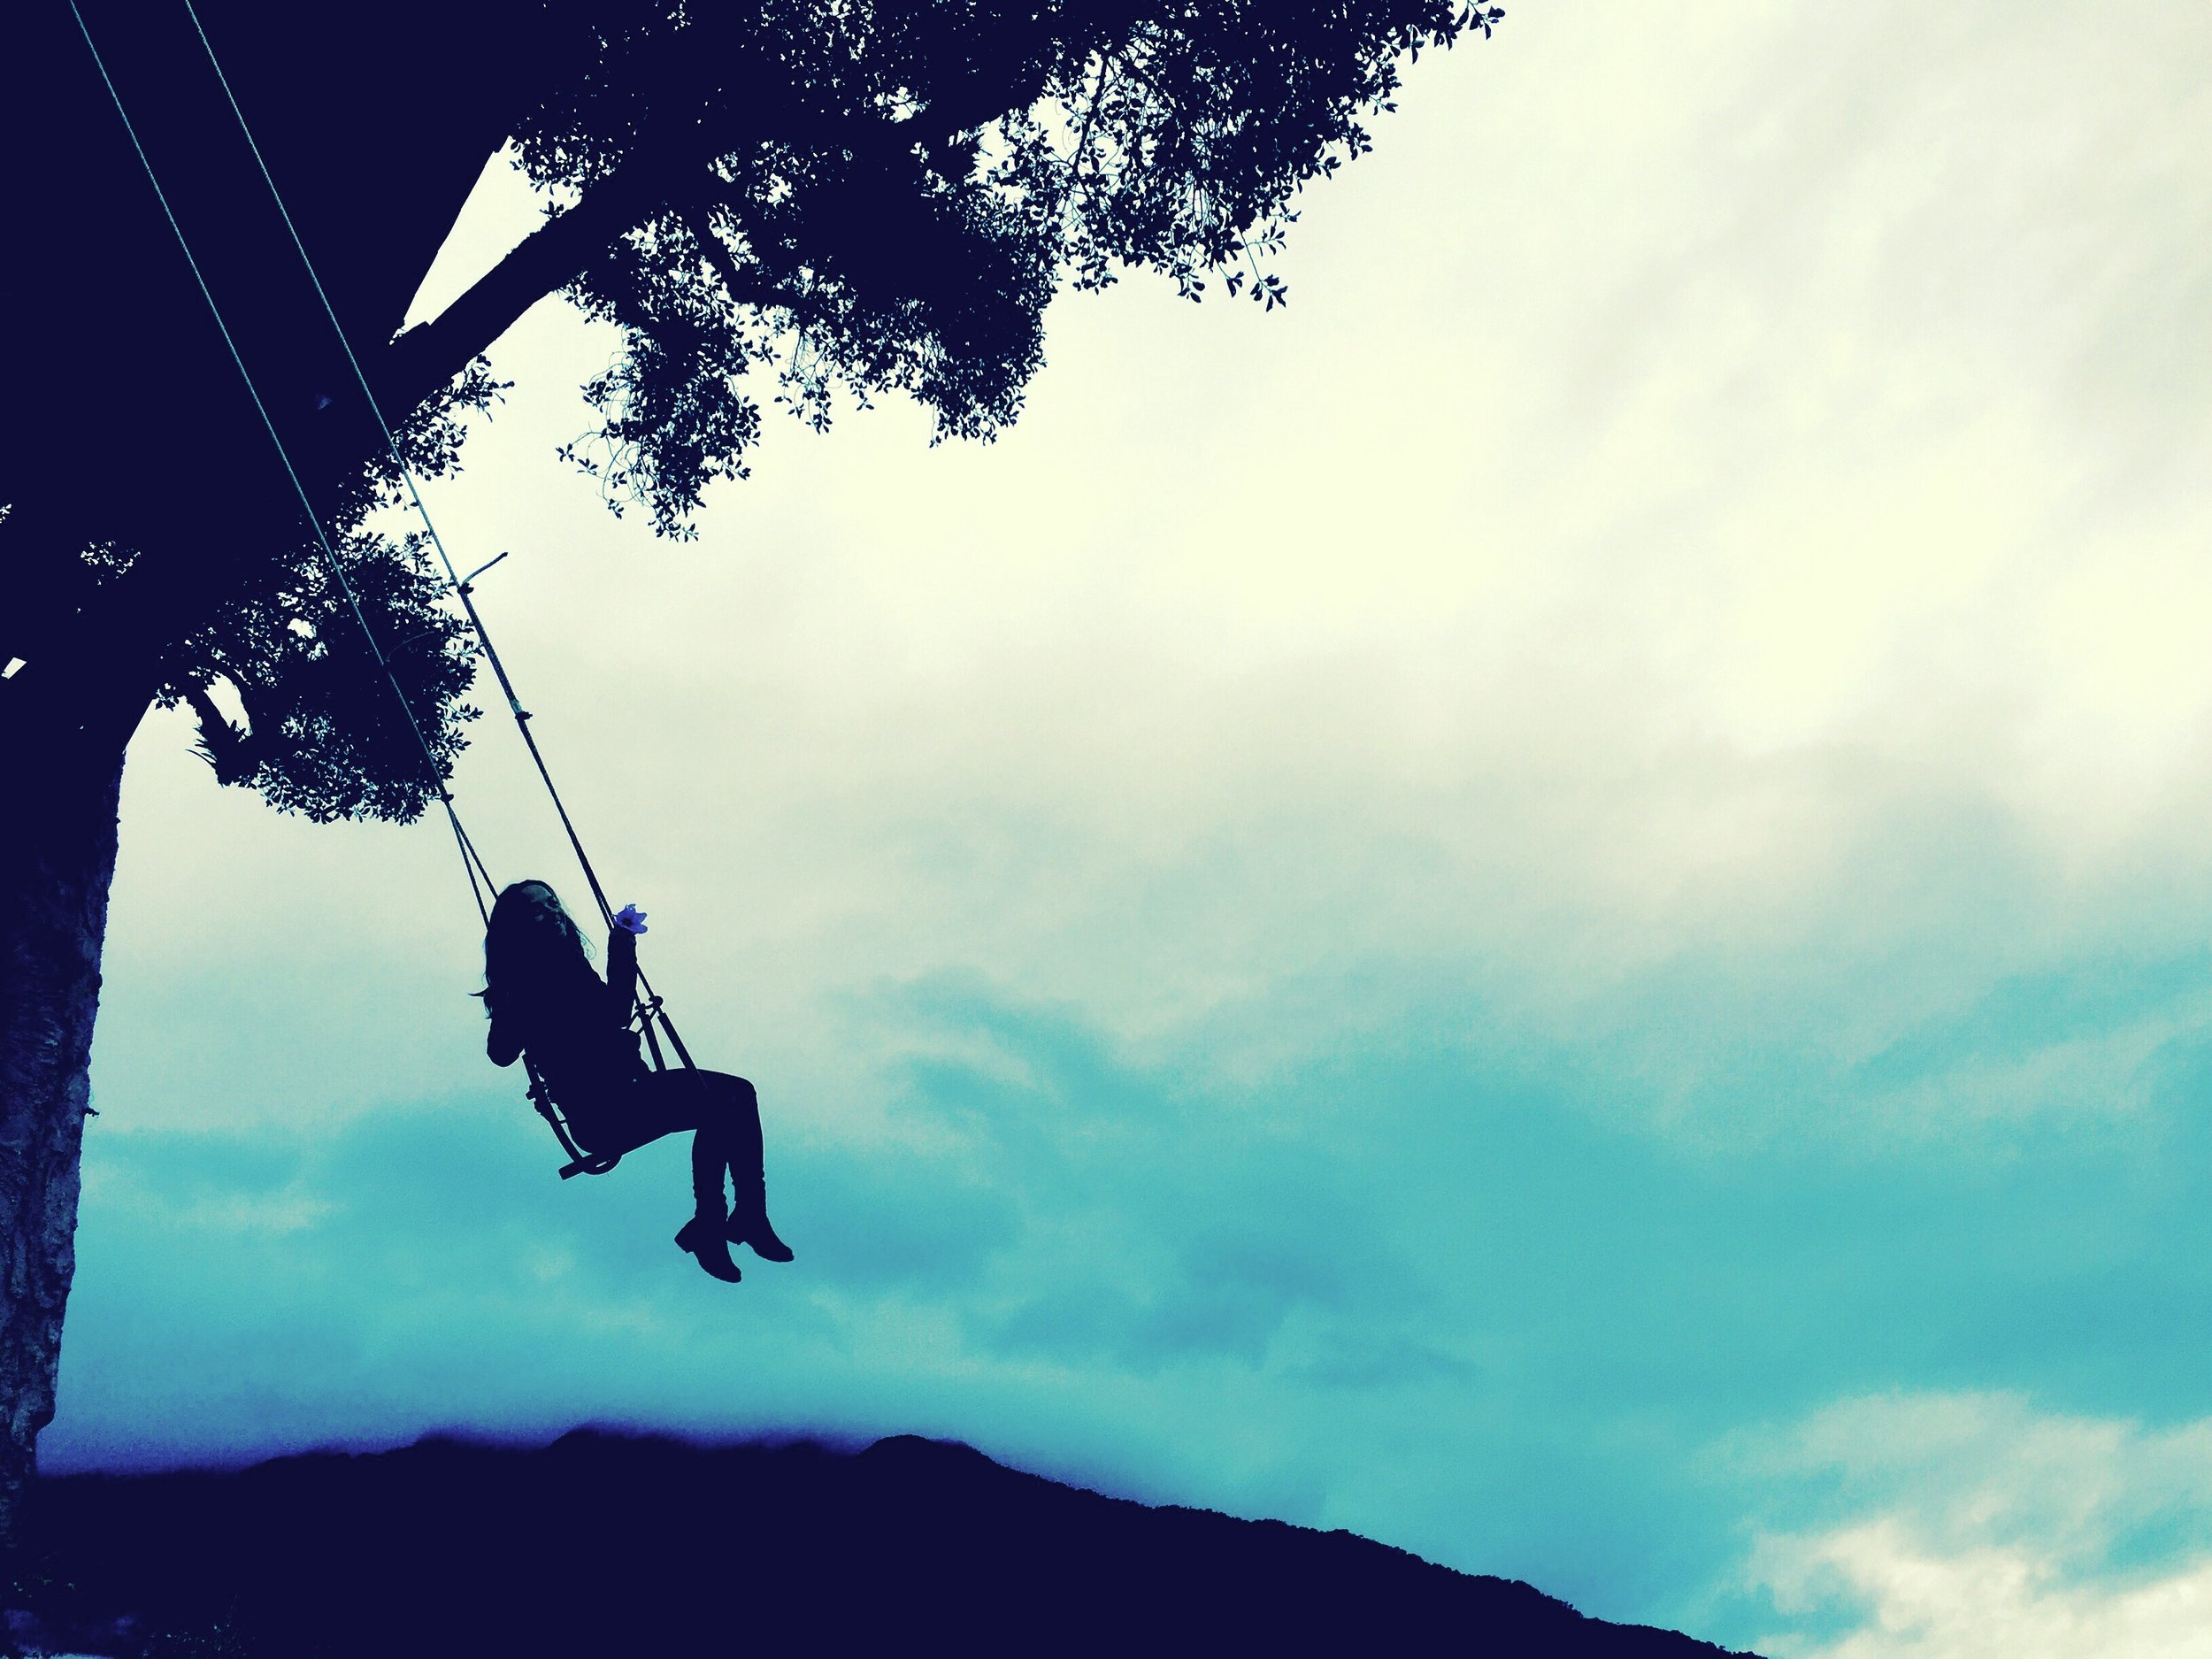 The Swing at the End of the World, Baños, Equador - 3 Days*